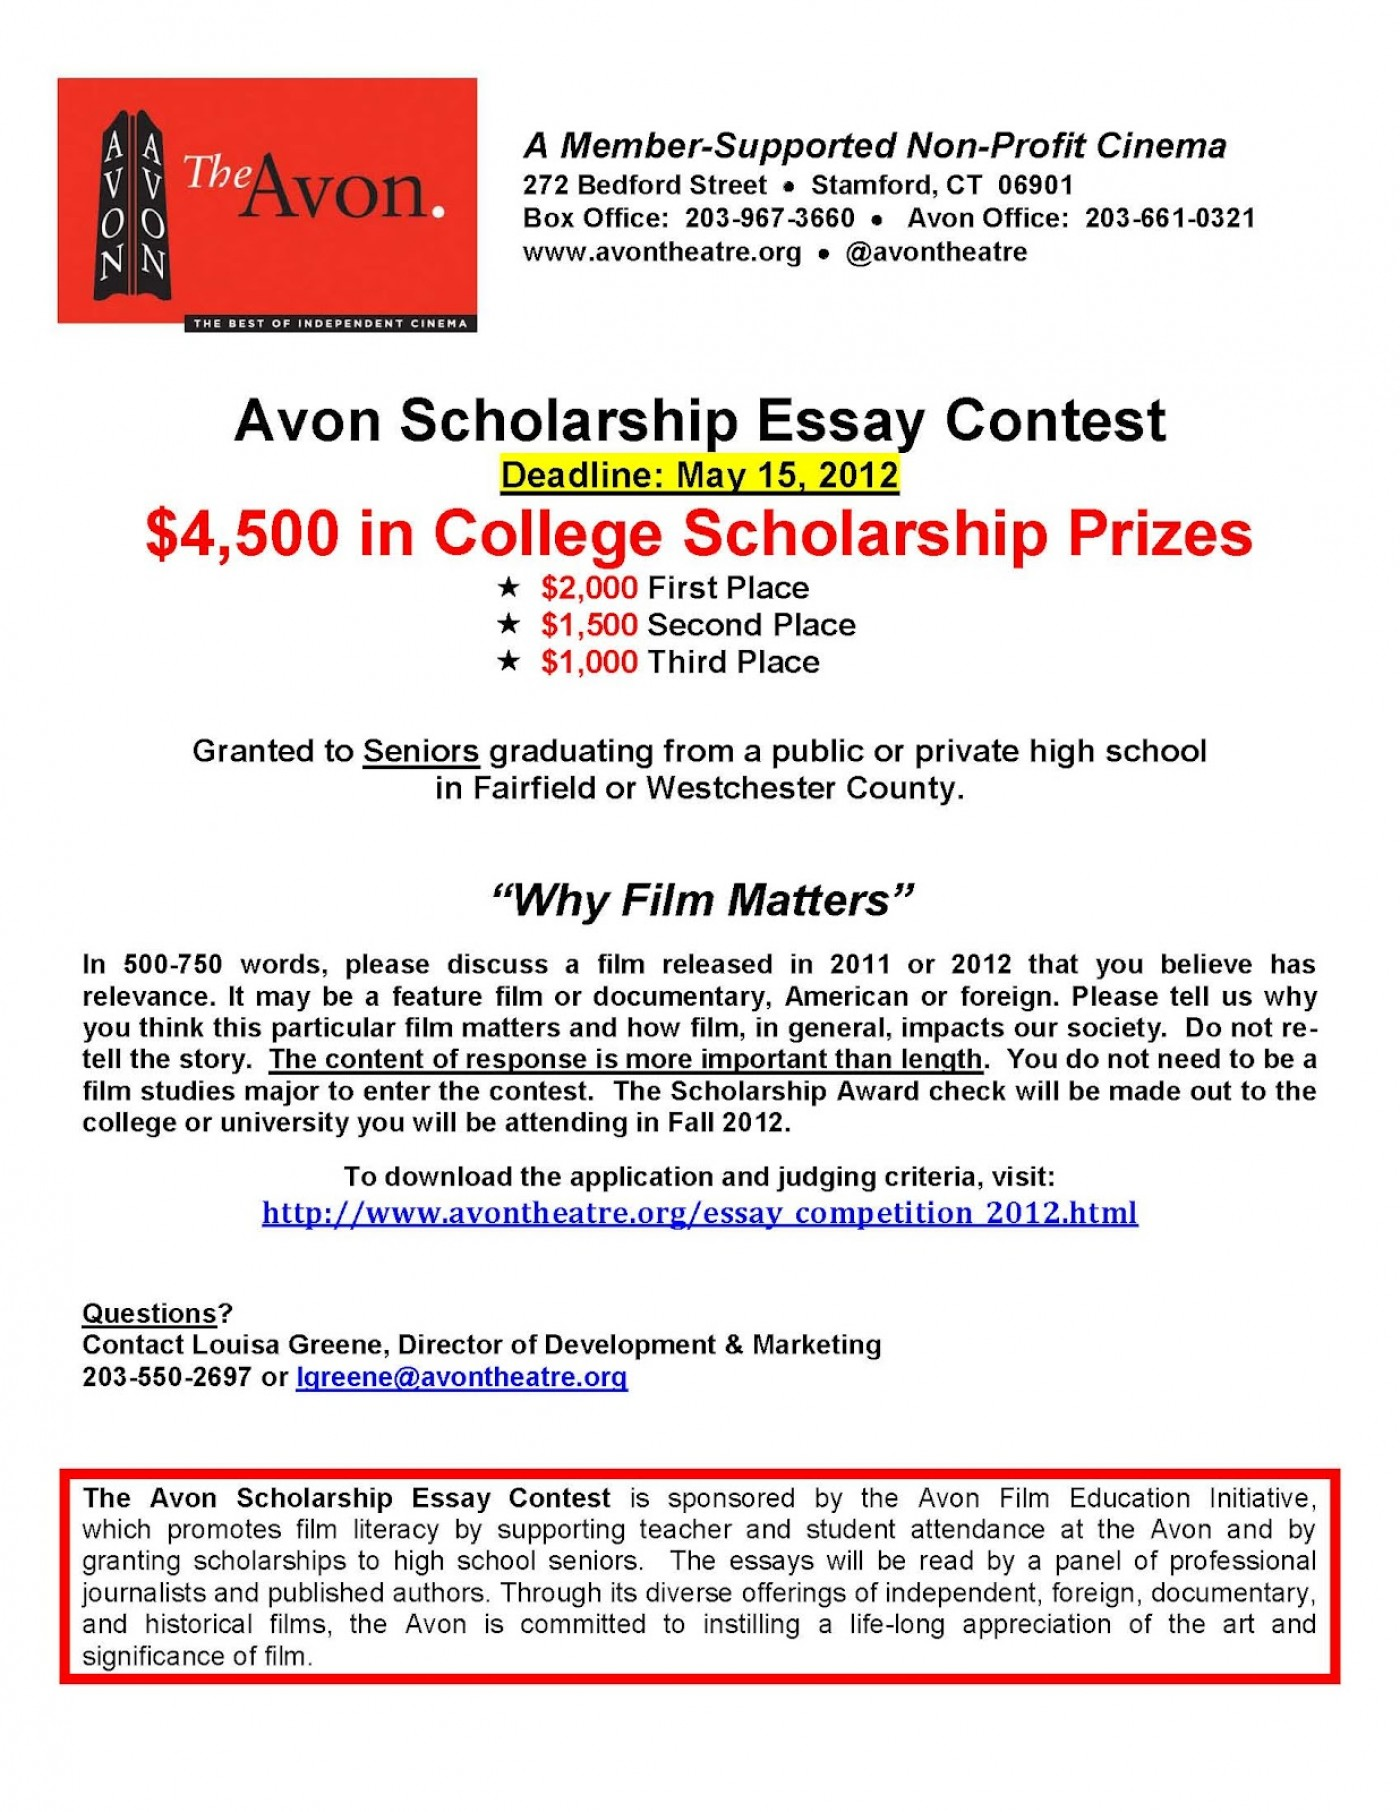 016 Avonscholarshipessaycontest2012flyer Essay Example Shocking Scholarships 2018 Canada 2019 No For High School Juniors 1400